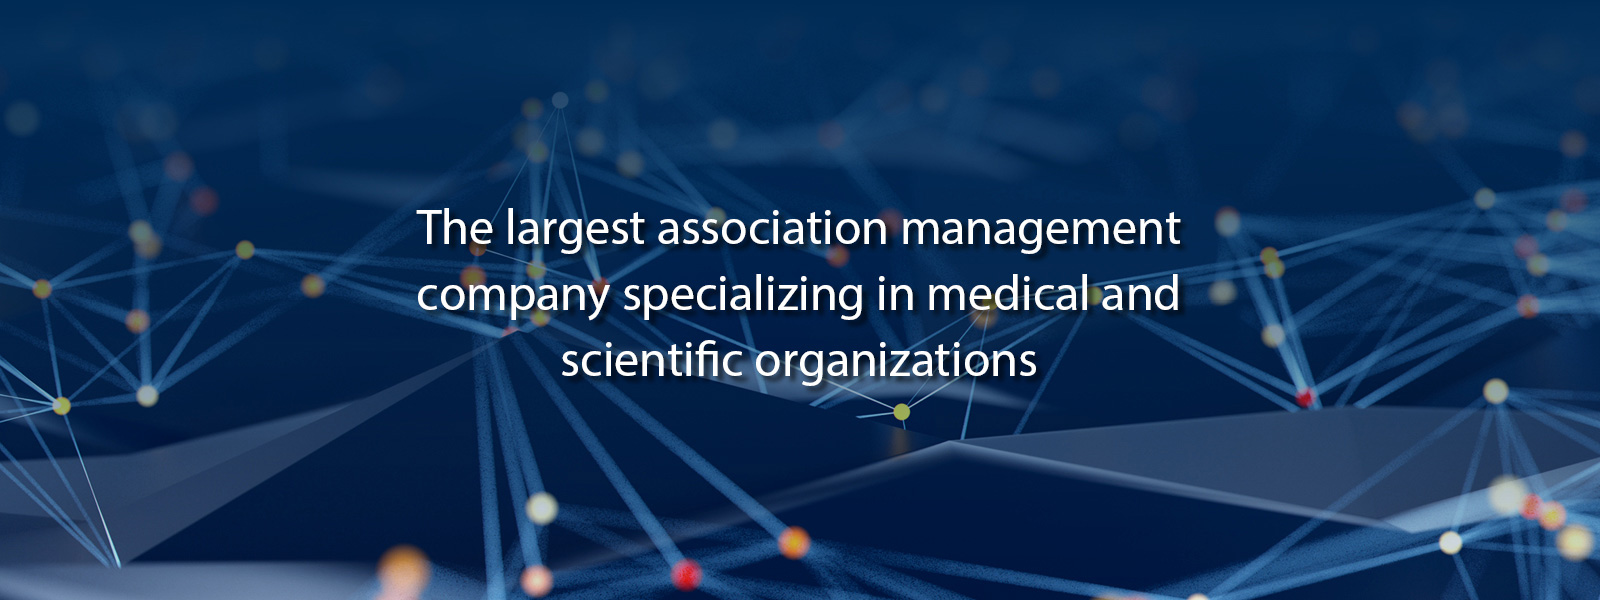 The largest association management company specializing in medical and scientific organizations